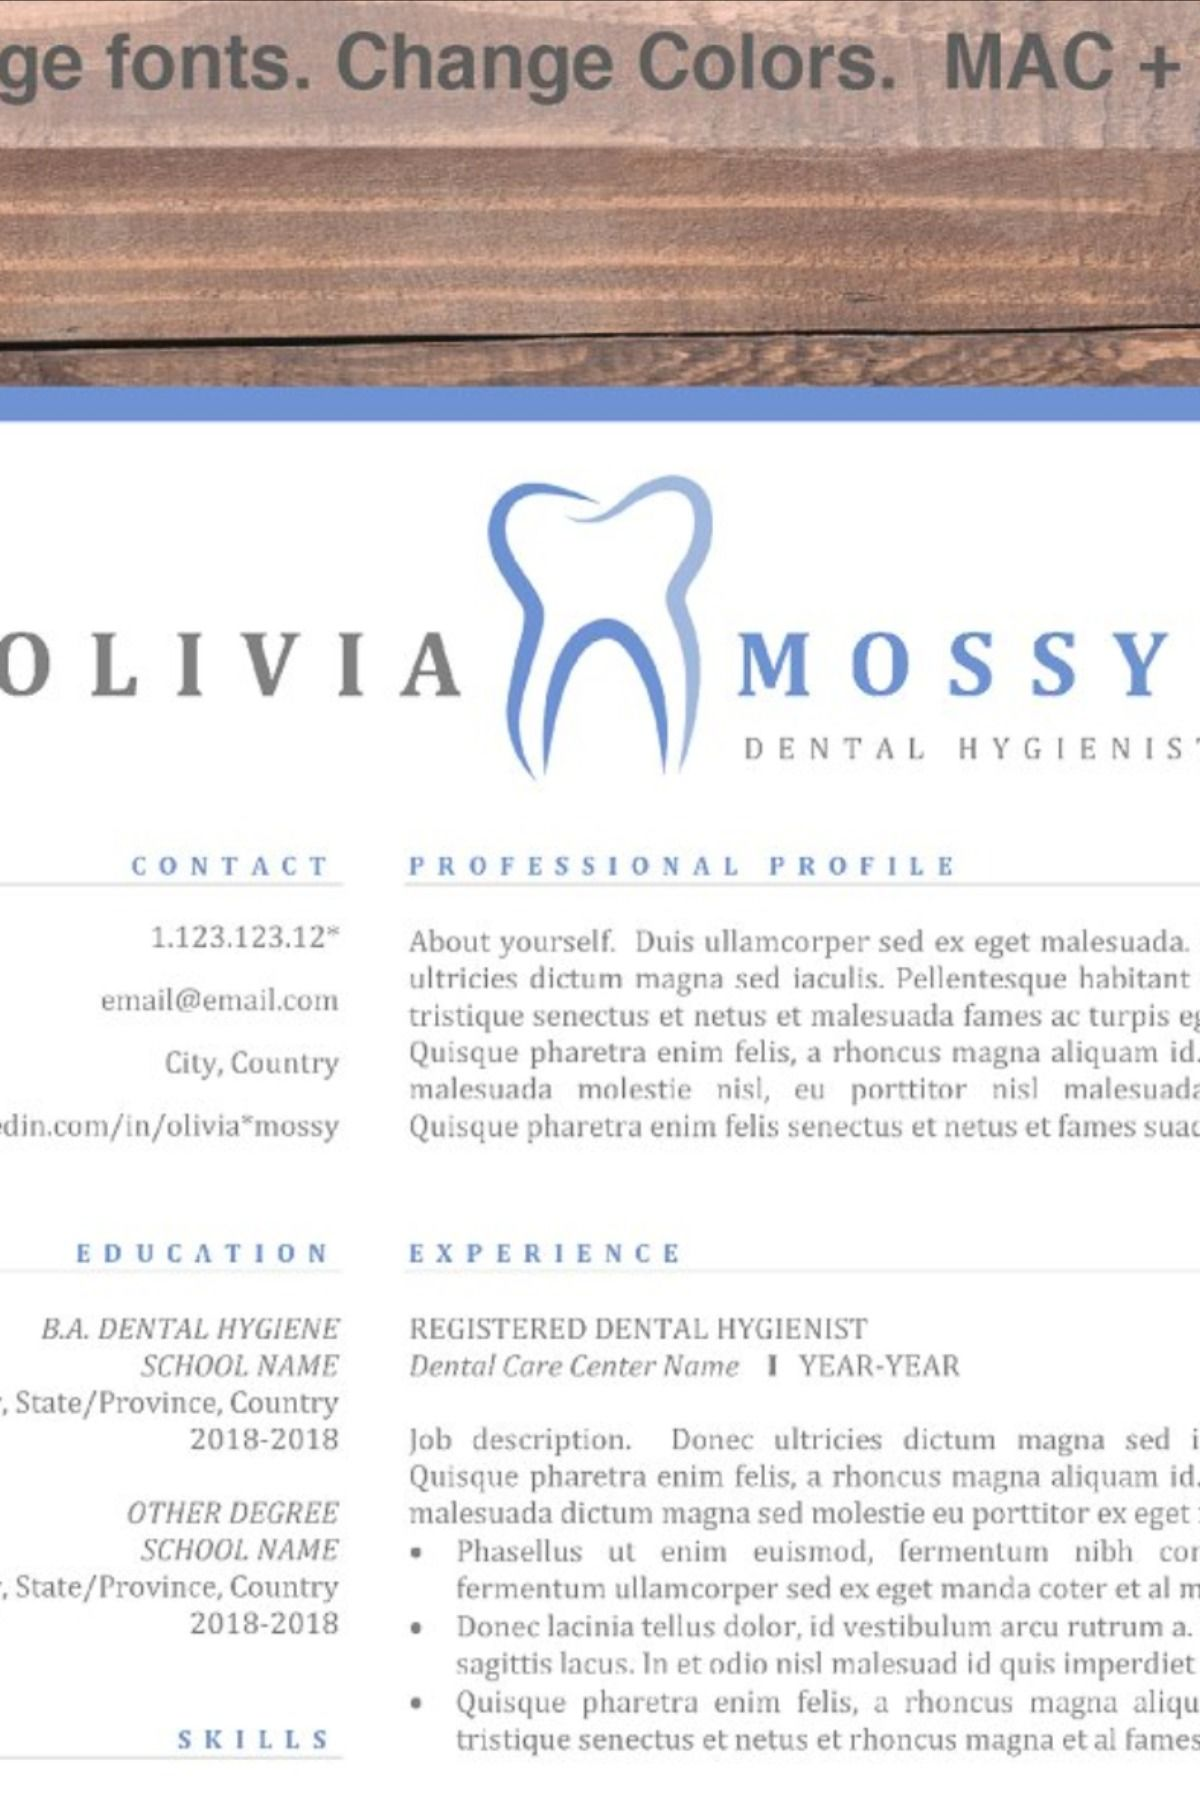 Hygienist Resume Template Dentist CV (With images